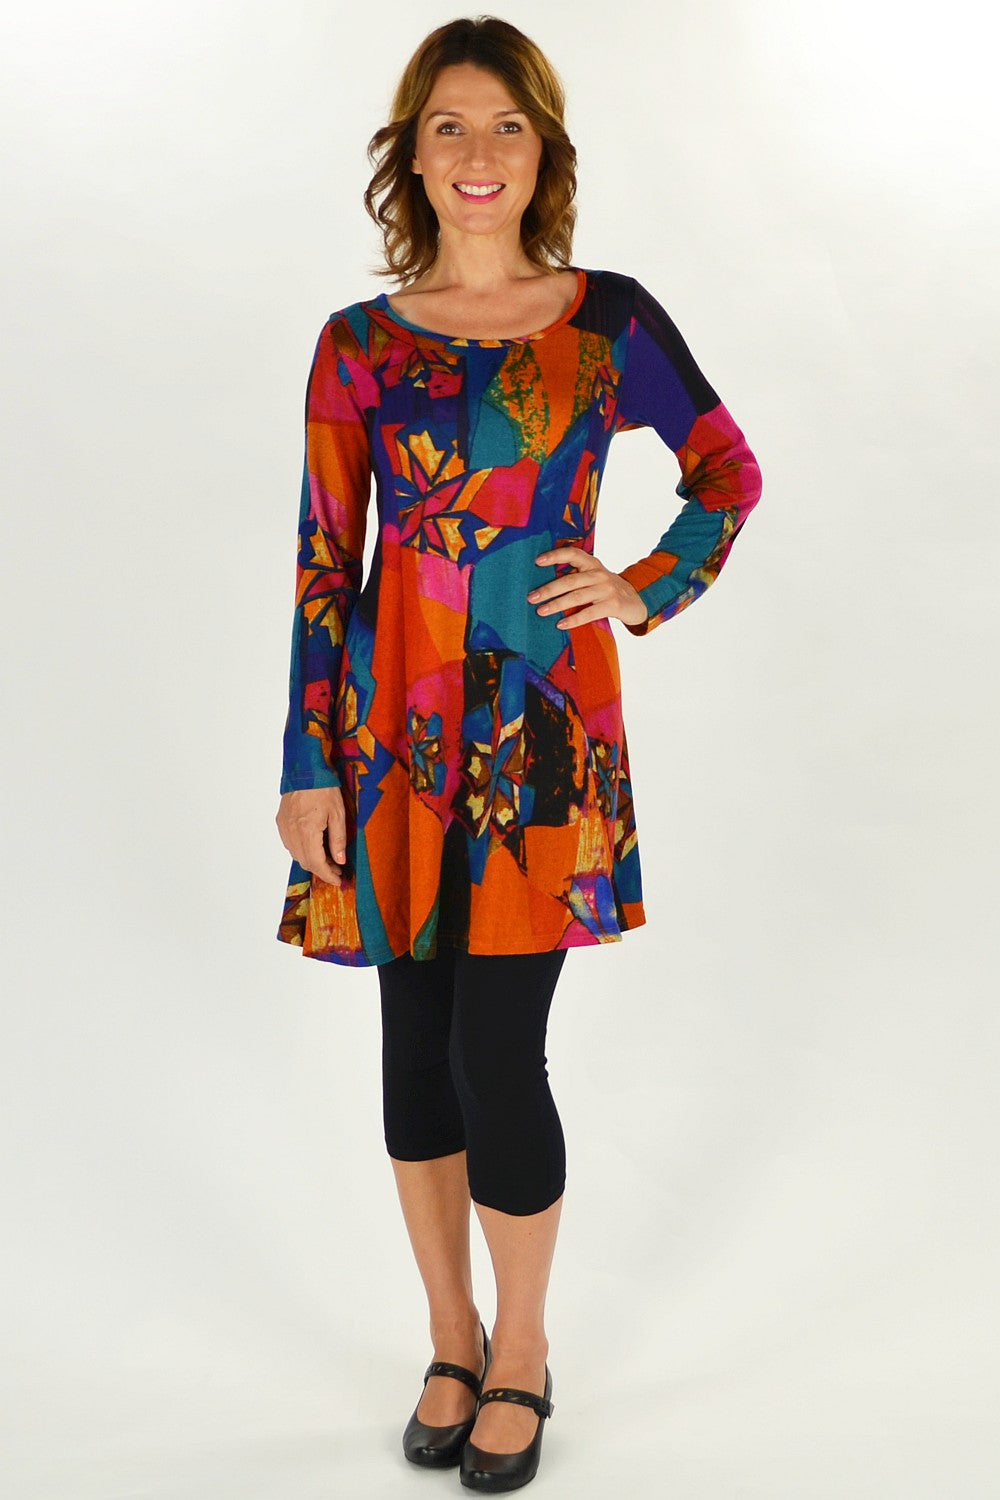 Stain Glass Tunic - at I Love Tunics @ www.ilovetunics.com = Number One! Tunics Destination